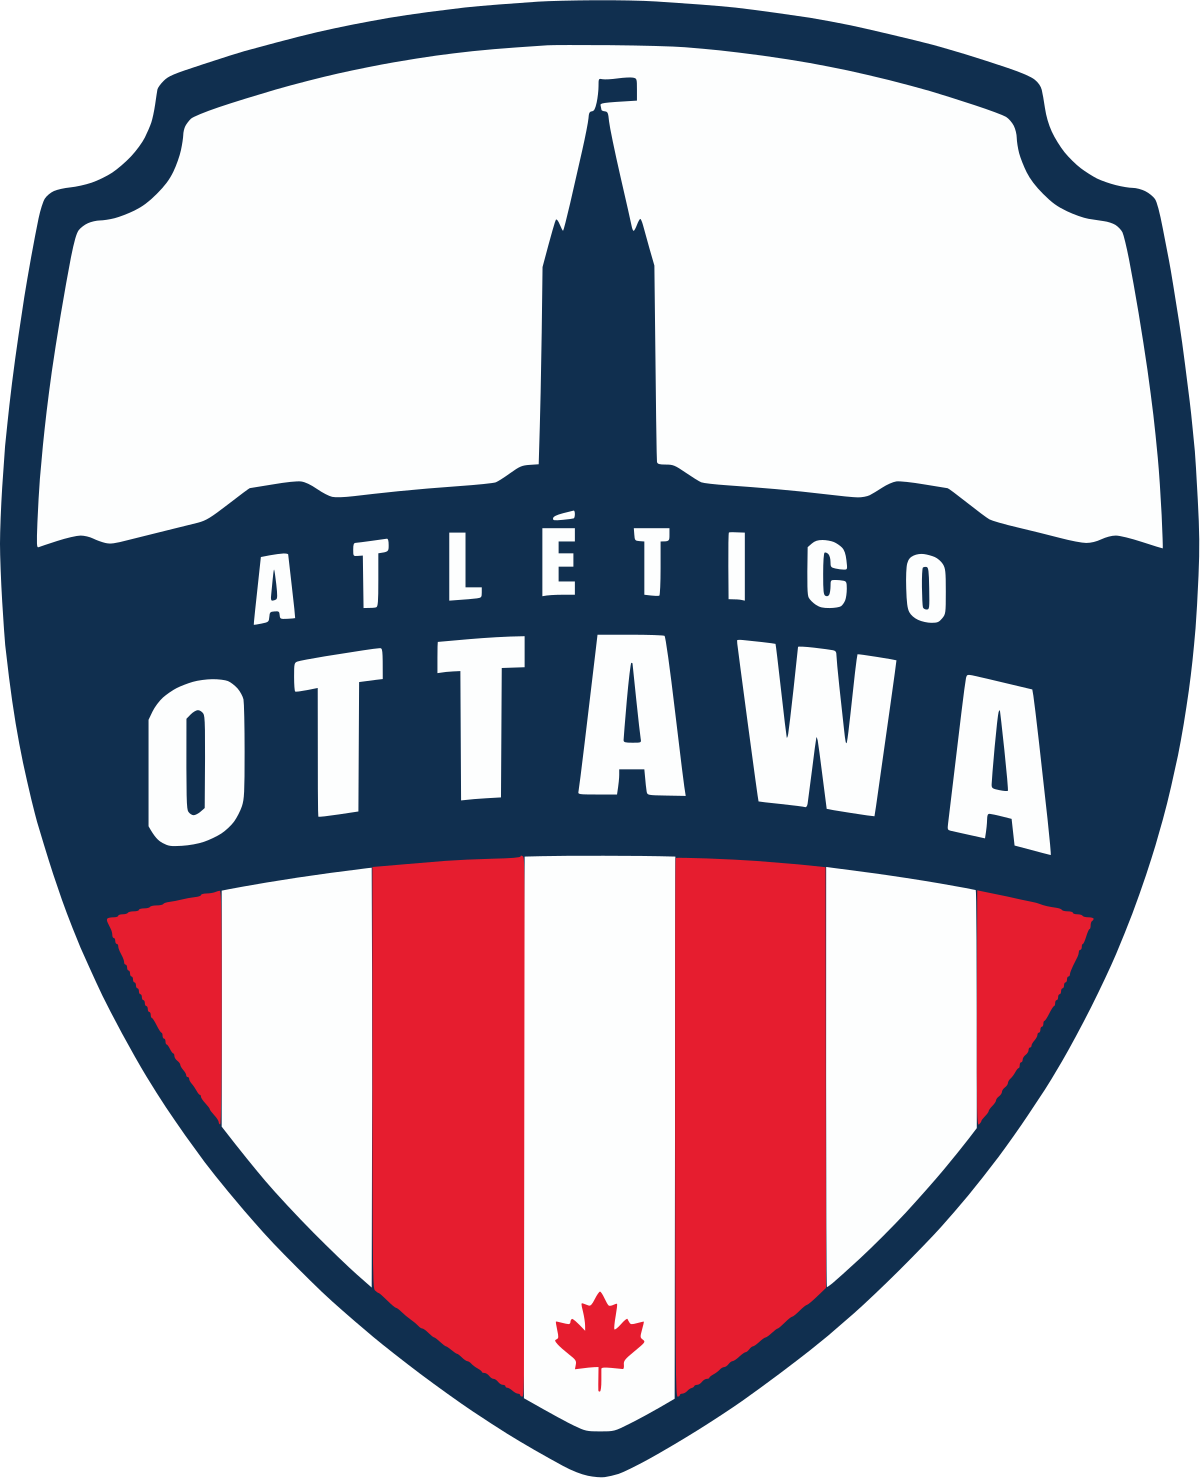 Atletico Ottawa Live Stream Live Score Roster Fixtures Results Video Highlights Scorebat Live Football